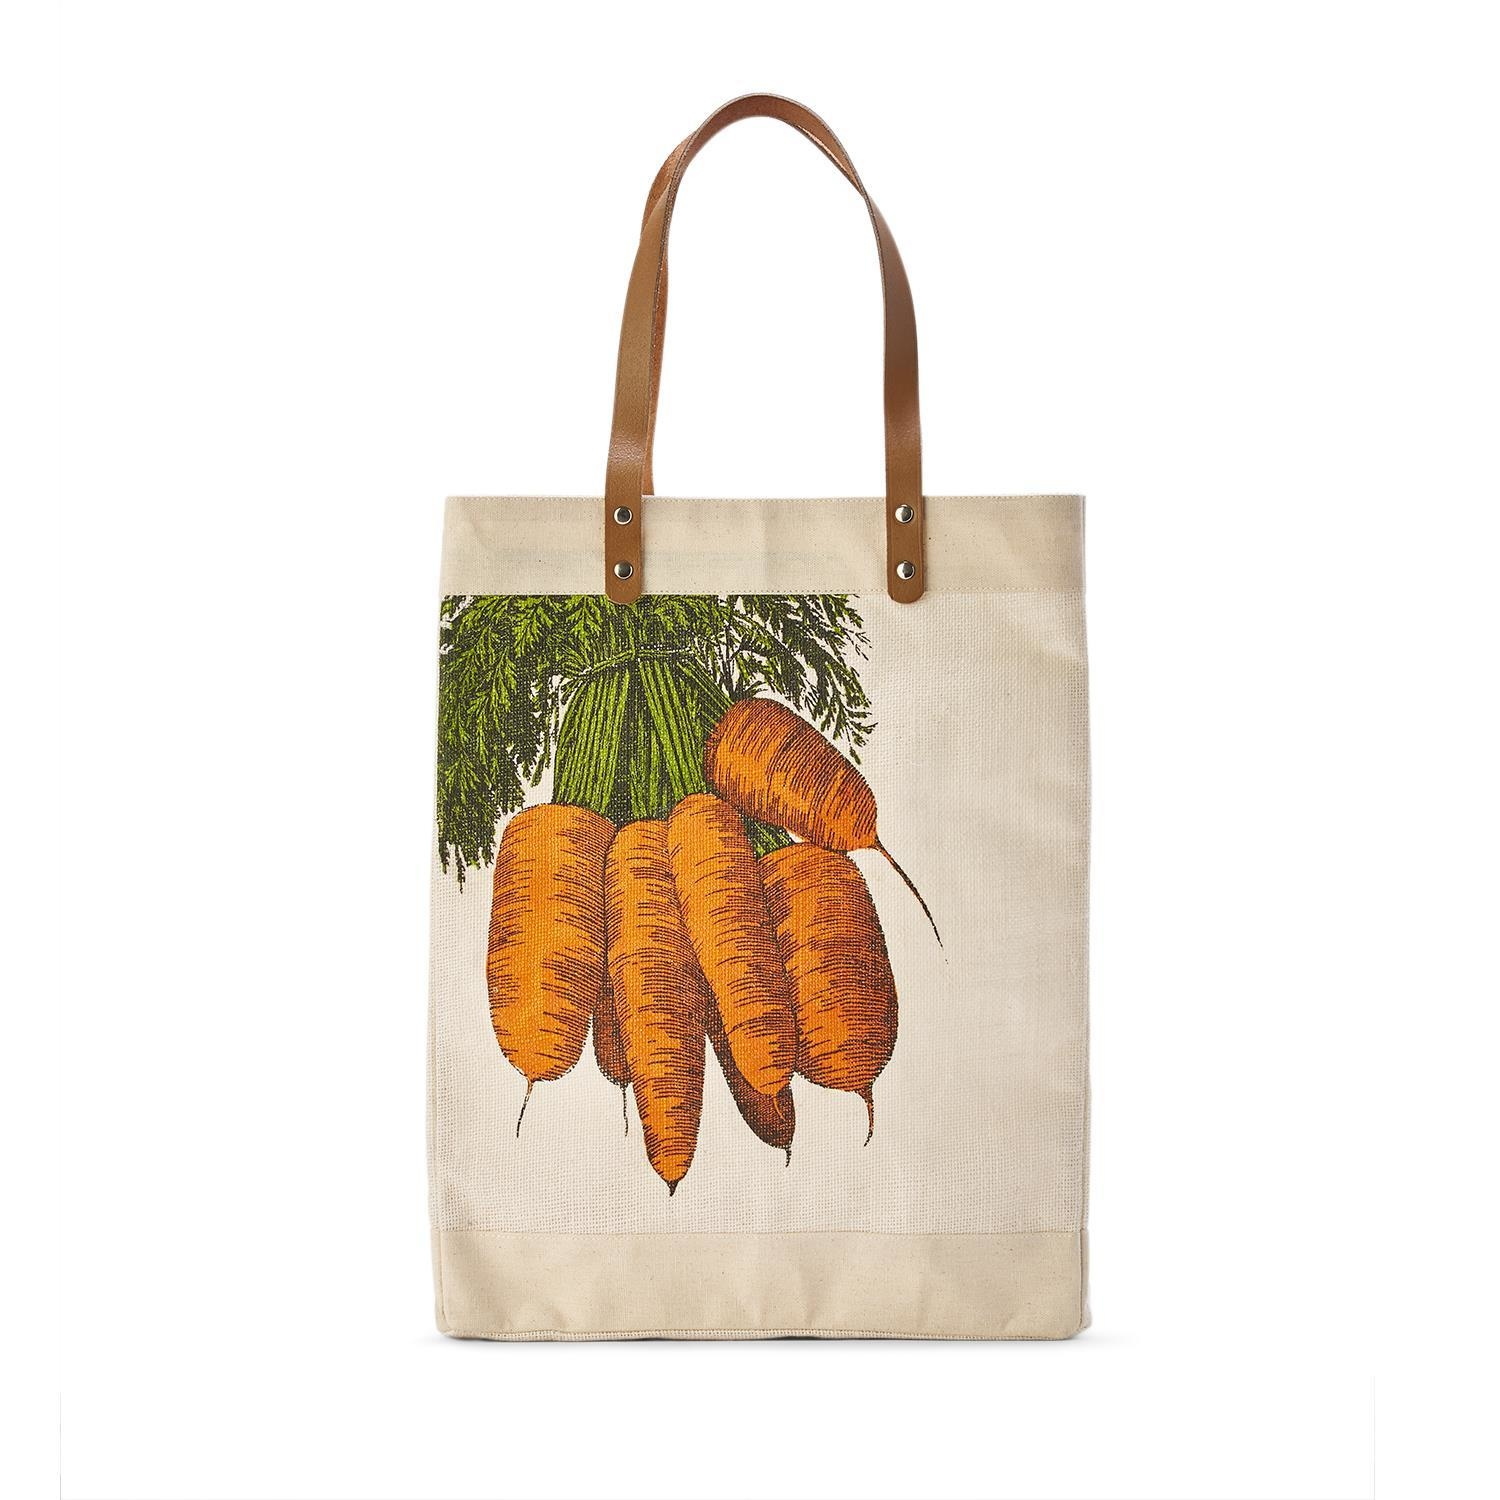 Two's Company Market Tote Bag - Carrots